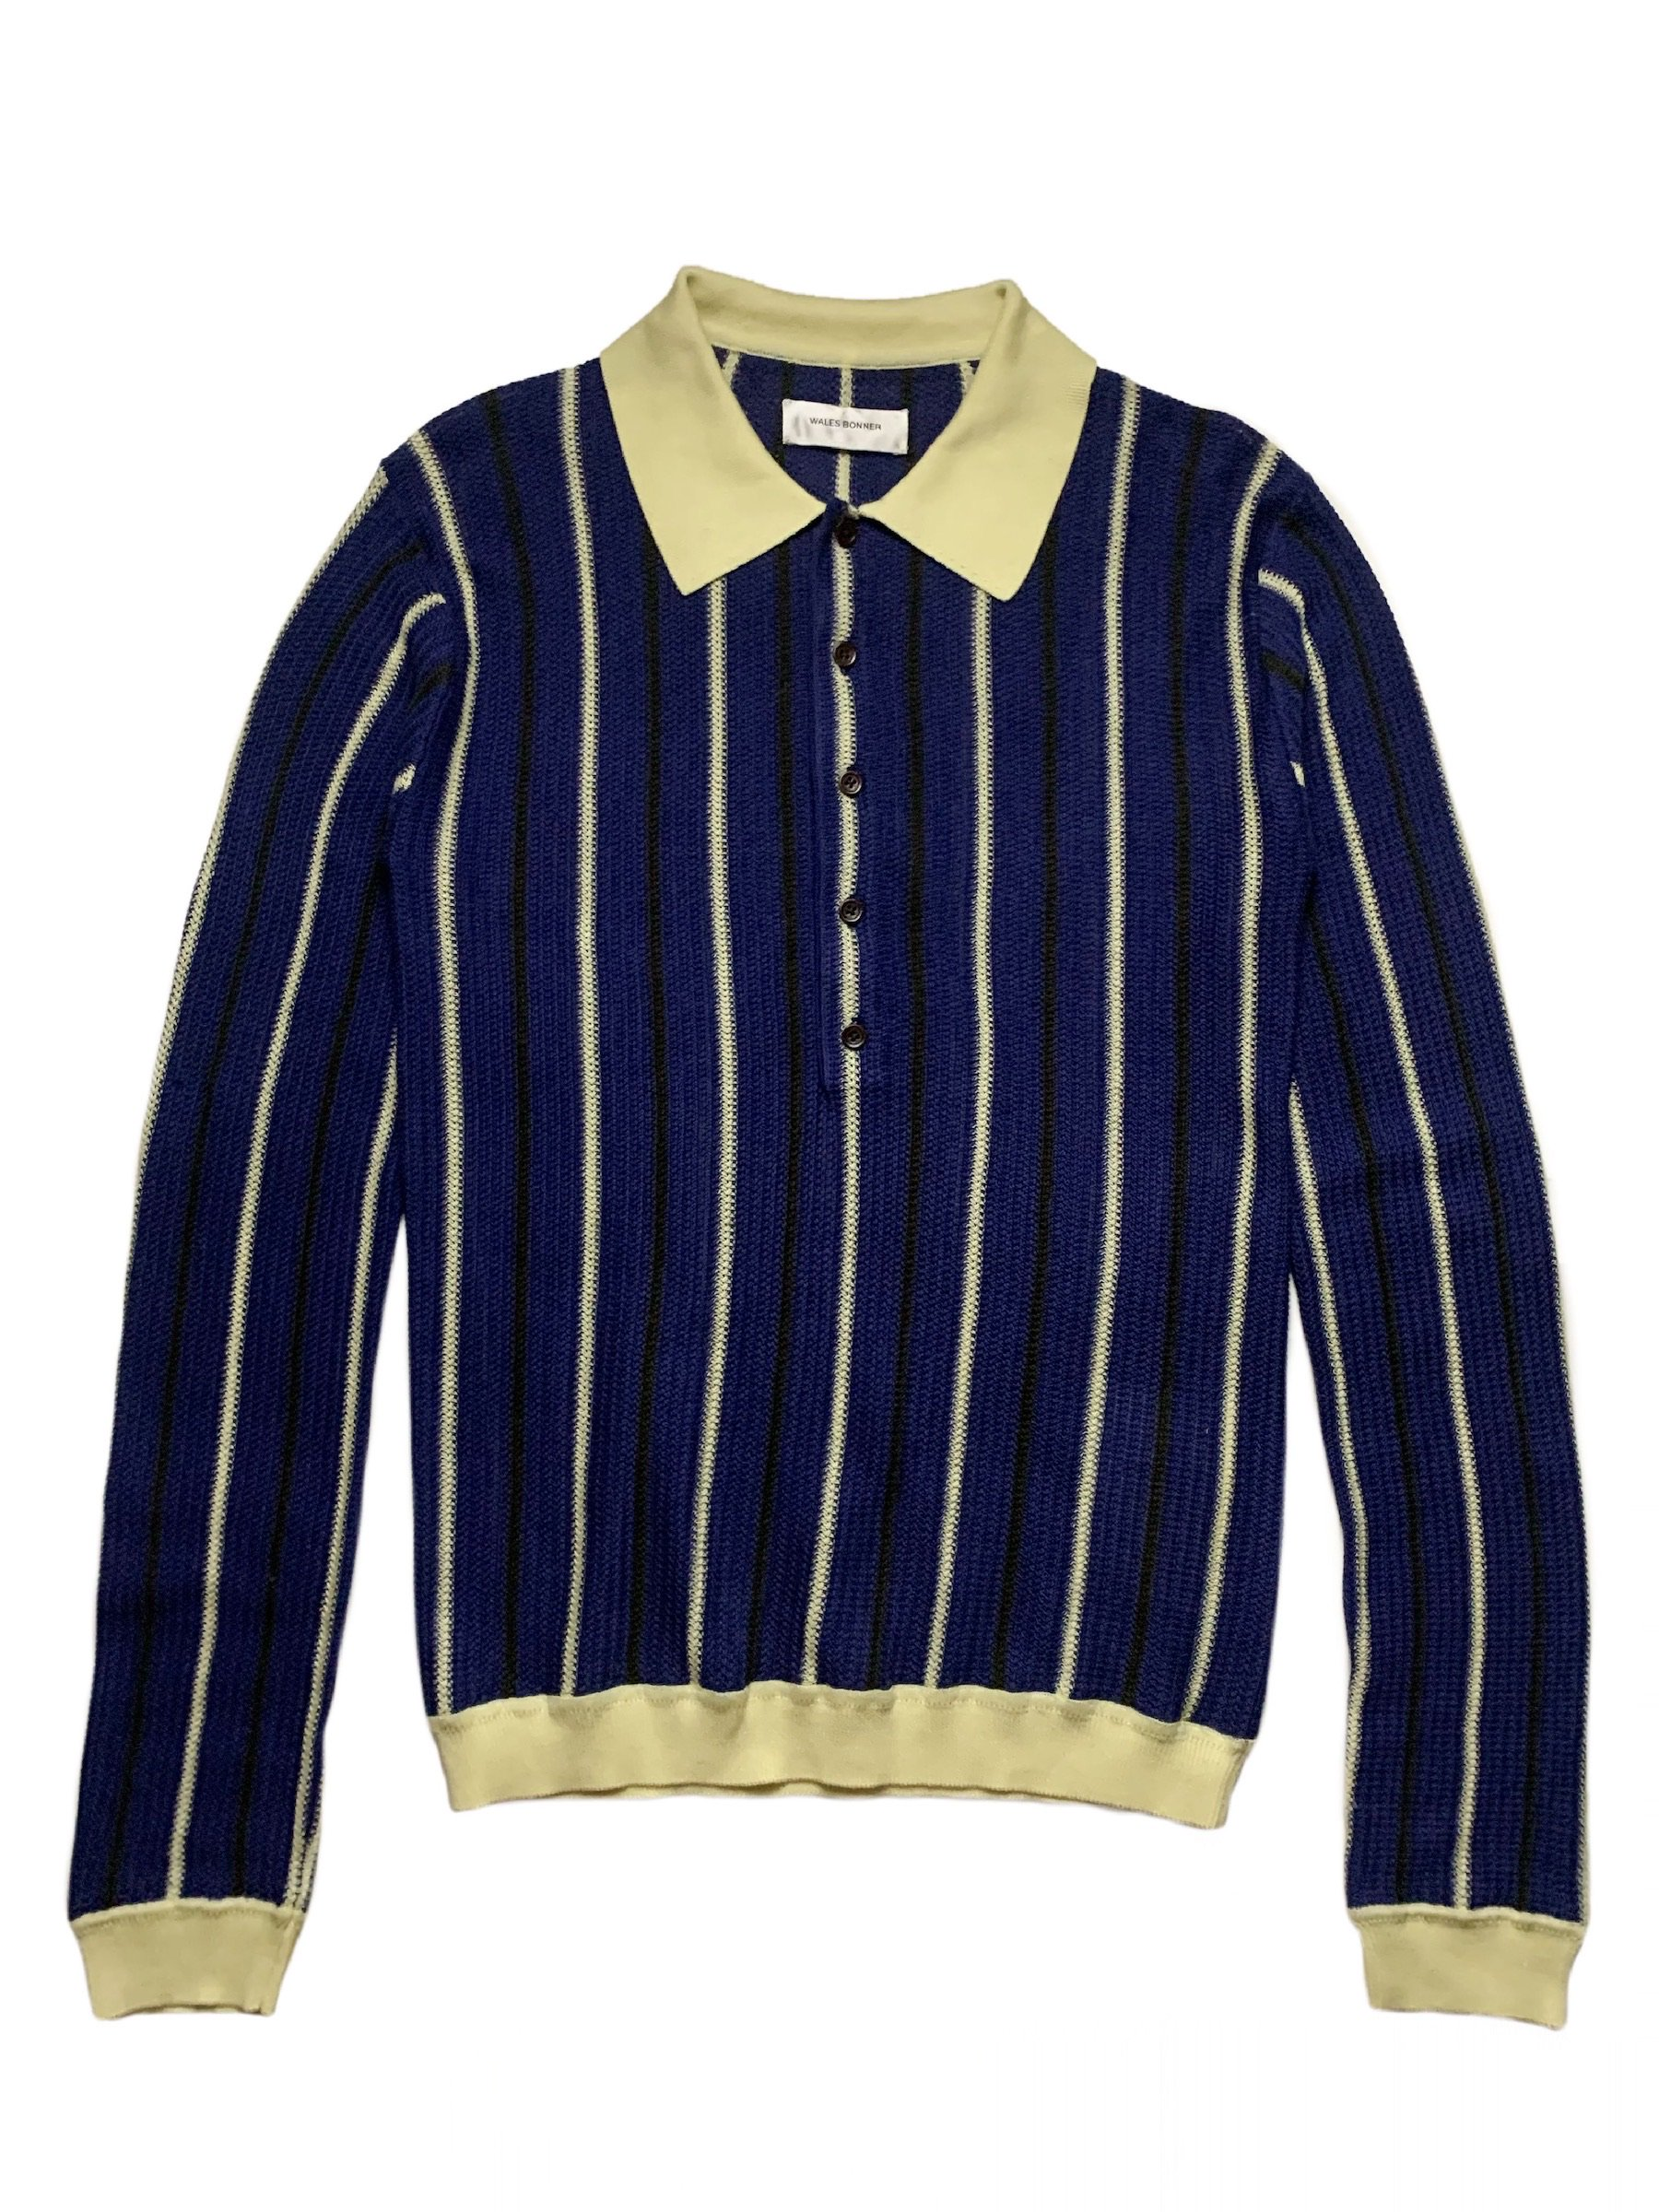 URIAH KNITTED POLO SHIRT<img class='new_mark_img2' src='https://img.shop-pro.jp/img/new/icons46.gif' style='border:none;display:inline;margin:0px;padding:0px;width:auto;' />